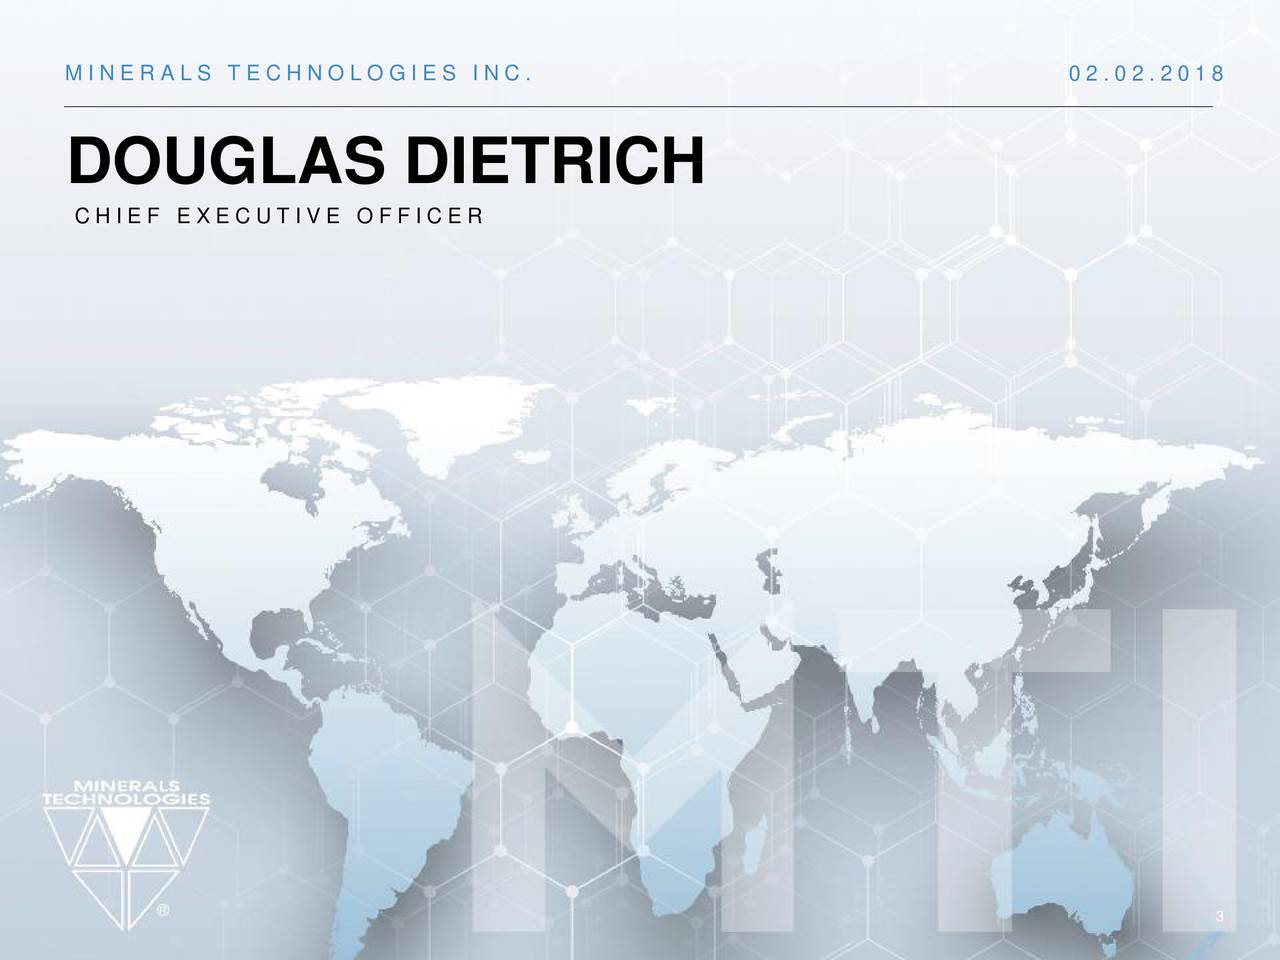 DOUGLAS DIETRICH CHIEF EXECUTIVE OFFICER 3